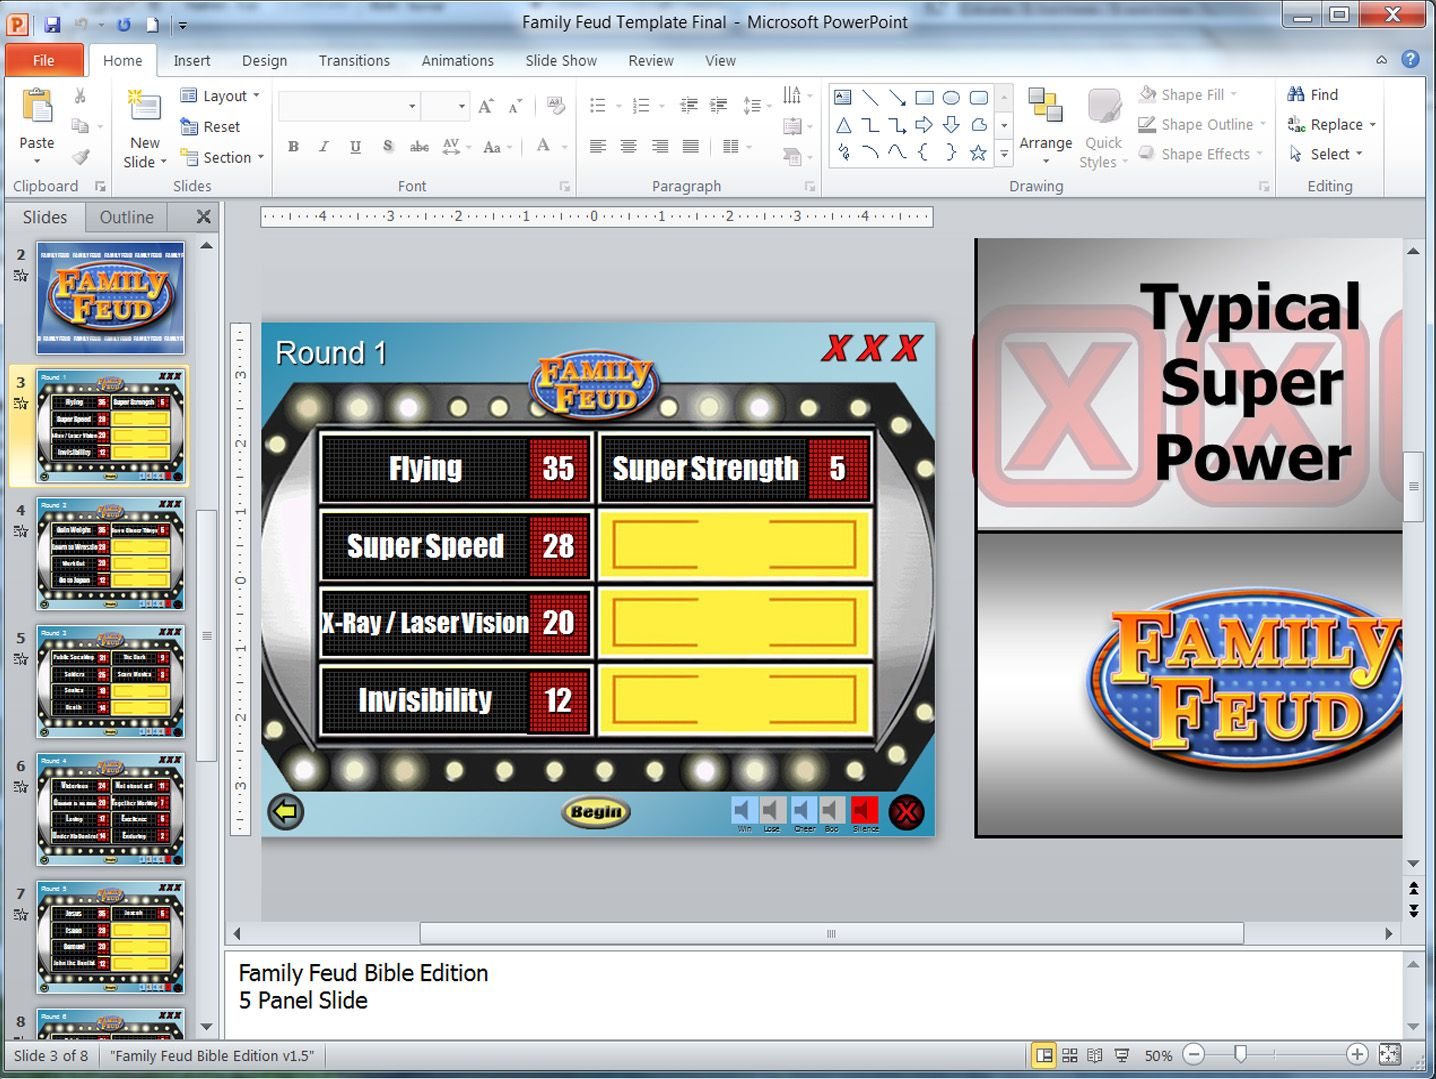 Family Feud Customizable Powerpoint Template Family feud